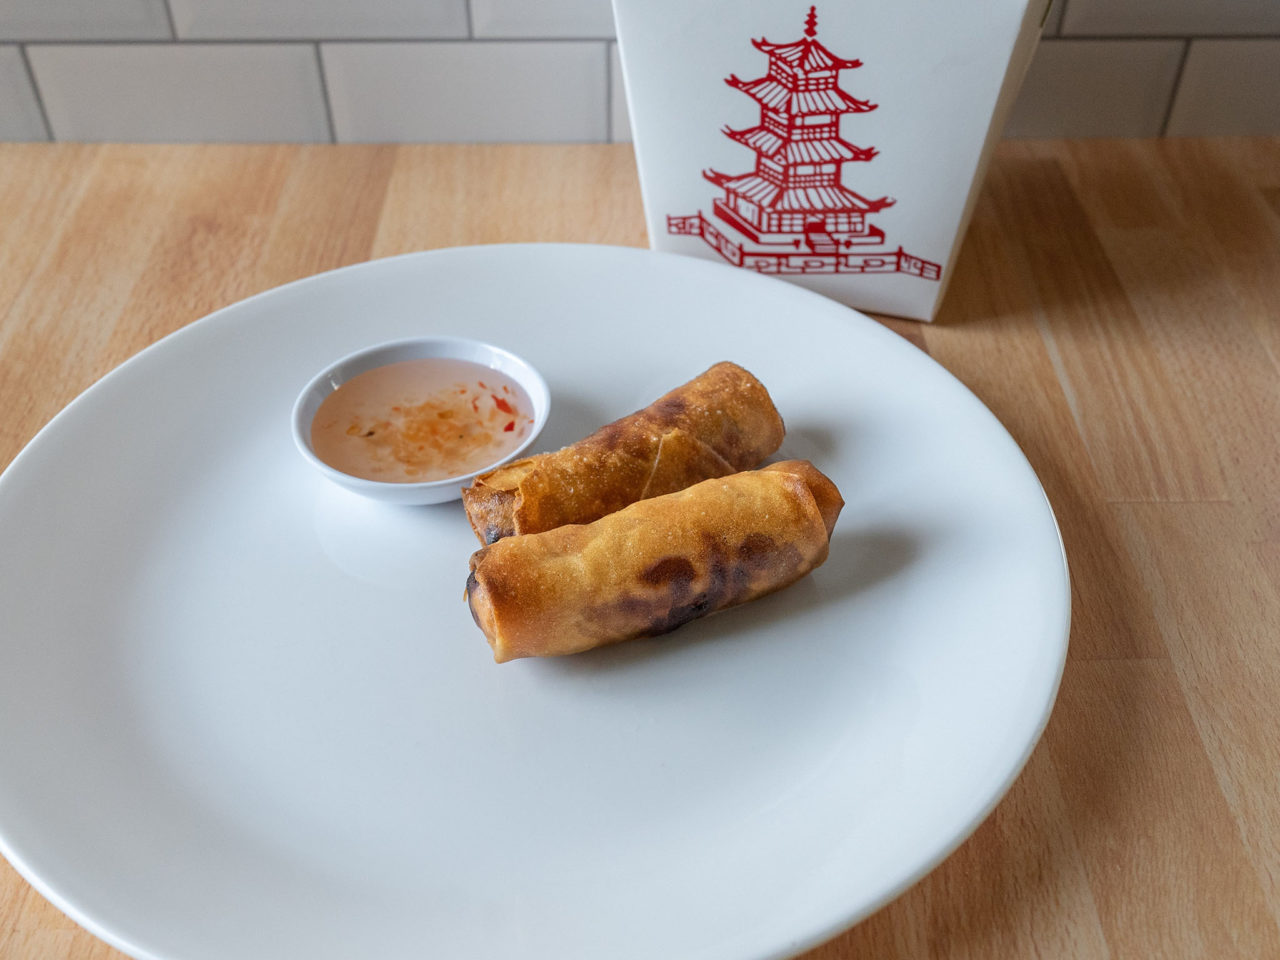 Air fried reheated spring rolls